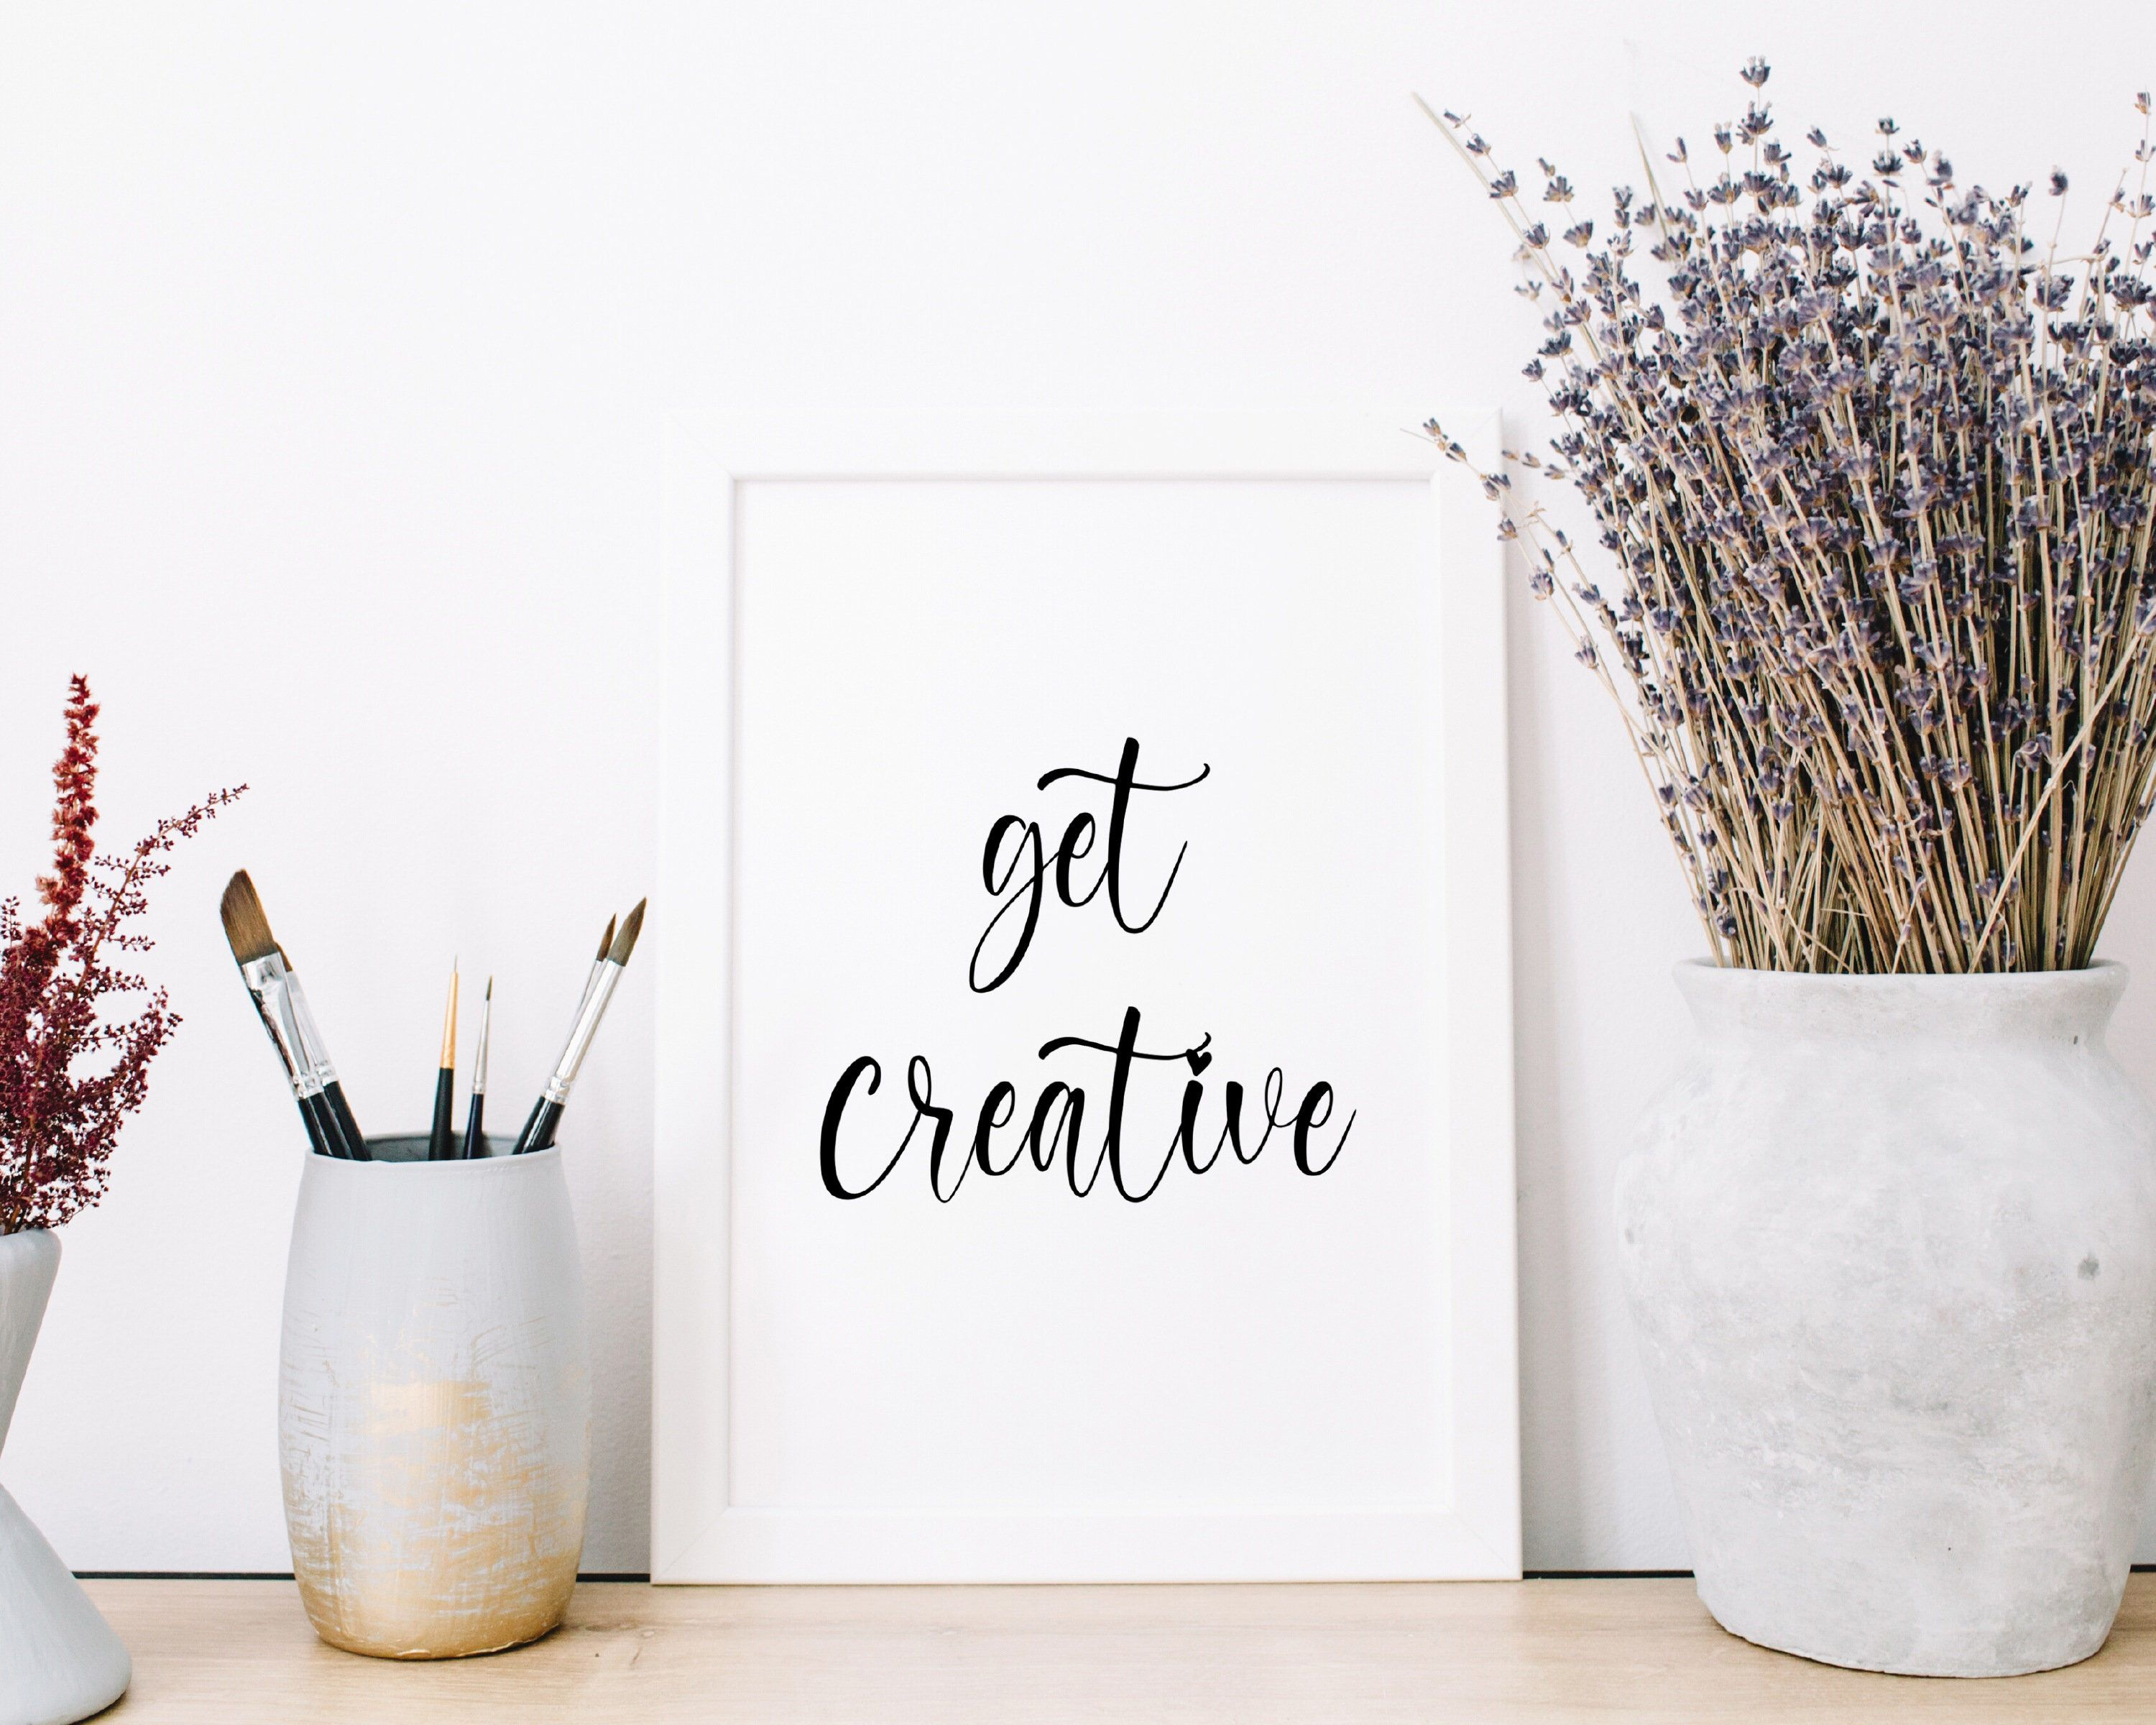 Get Creative Art Print Inspirational Quote Typography   Etsy